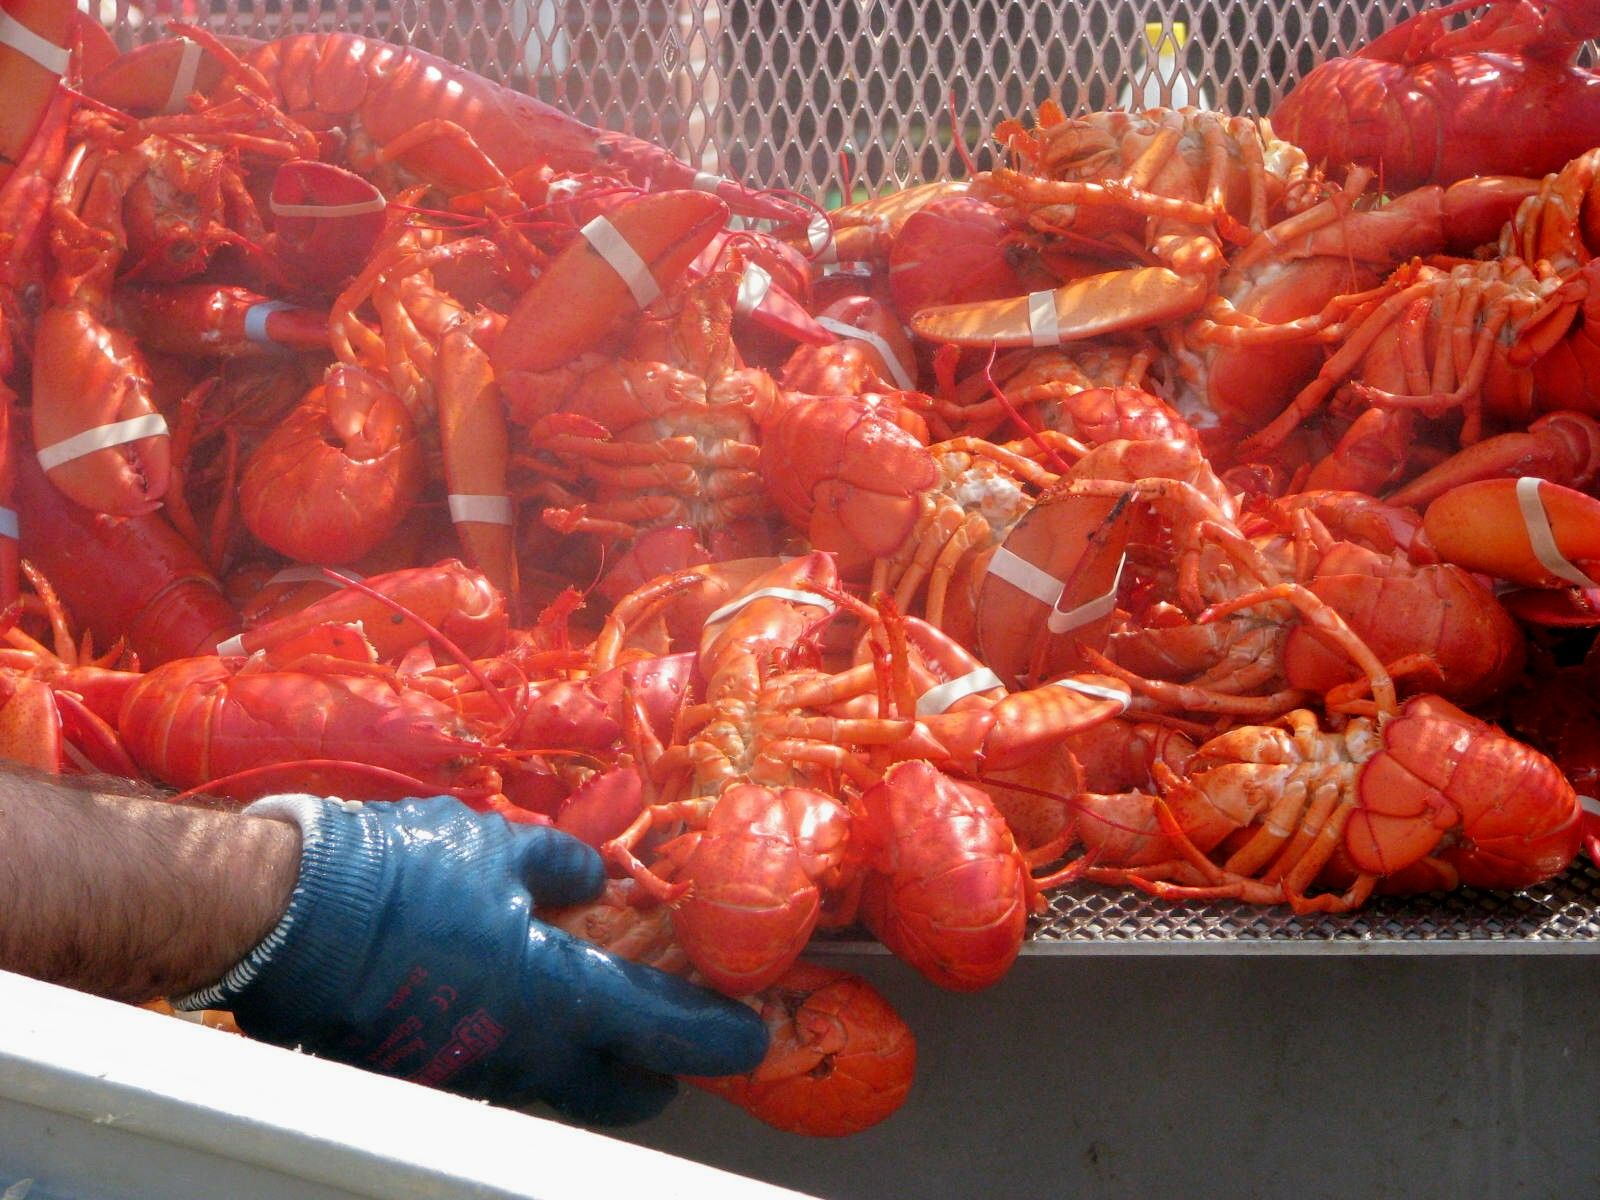 Pin By Summermaine Vacation Rentals On Dining Out On Maine S Midcoast Maine Lobster Festival Maine Lobster Maine